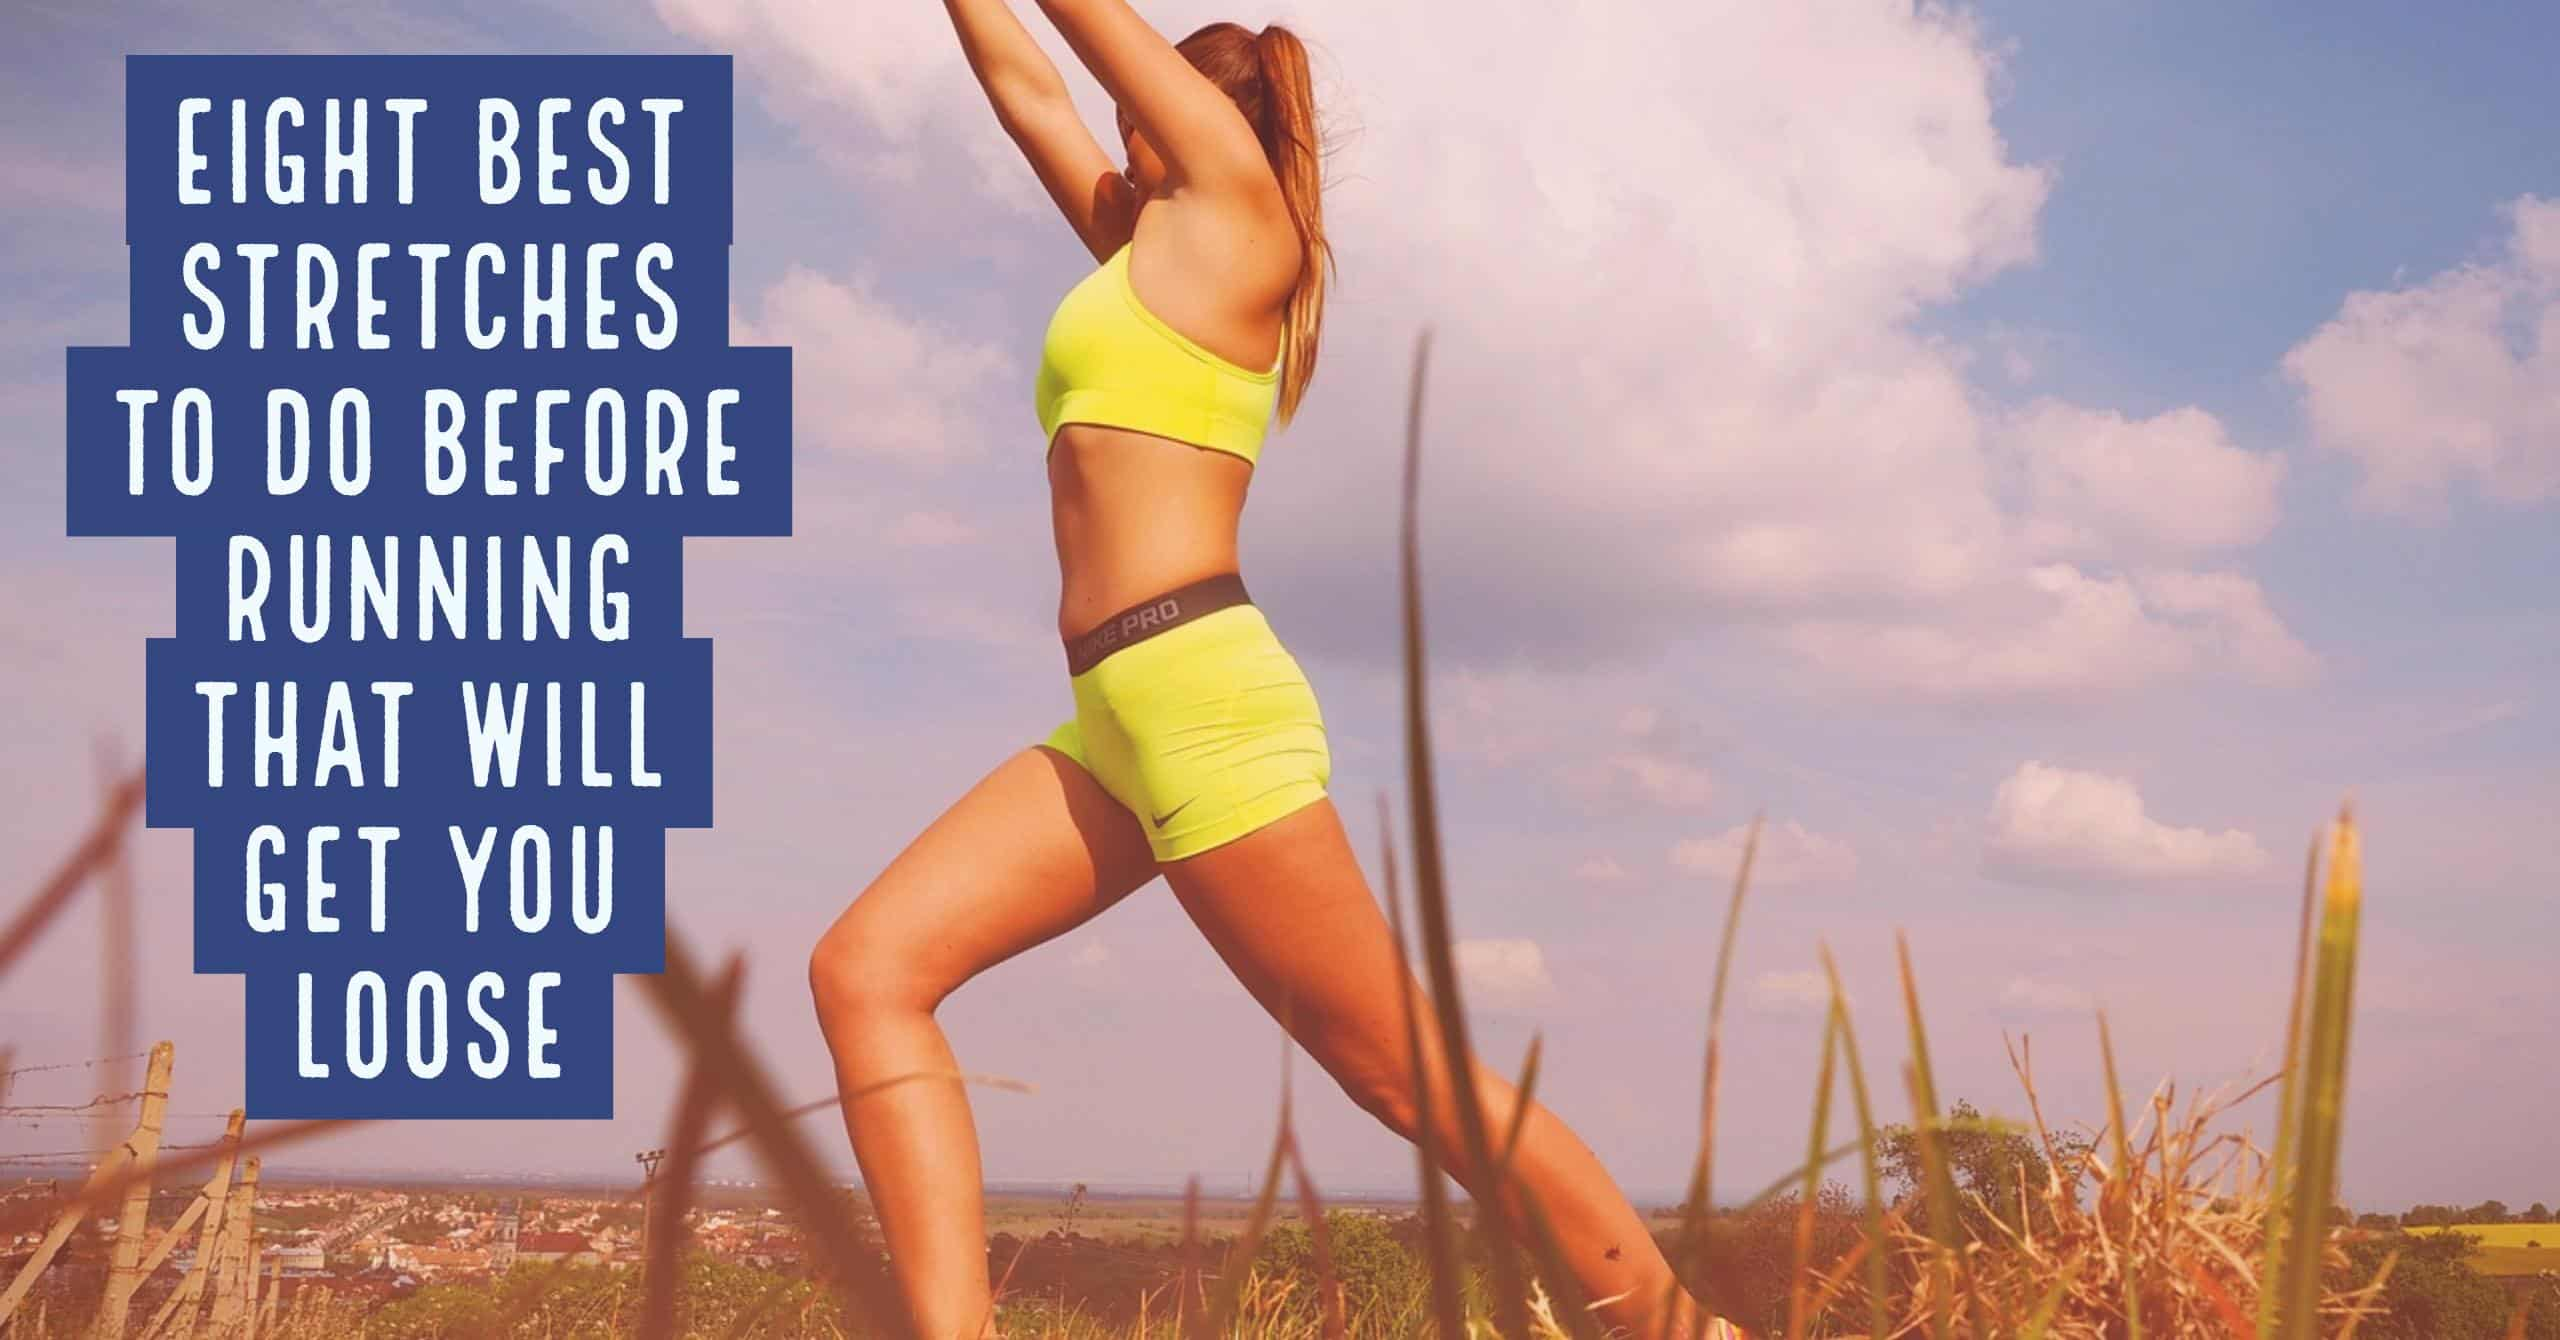 The best stretches to do before running - the 8 most simple & effective: